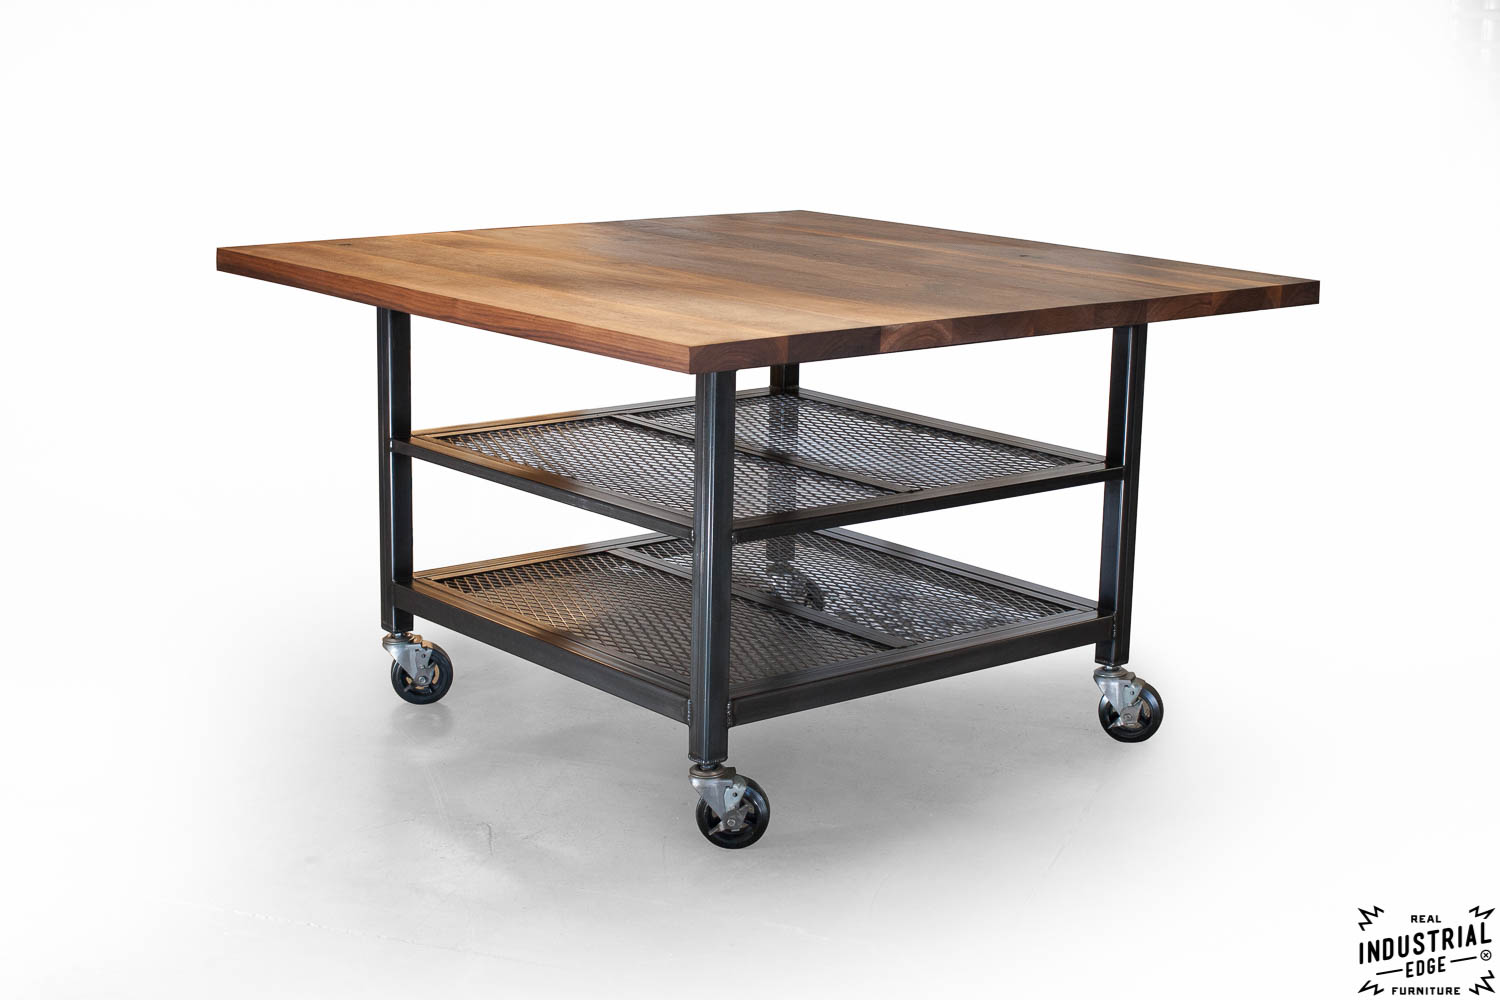 Walnut steel industrial kitchen island dining table real industrial edge furniture - Industrial kitchen tables ...